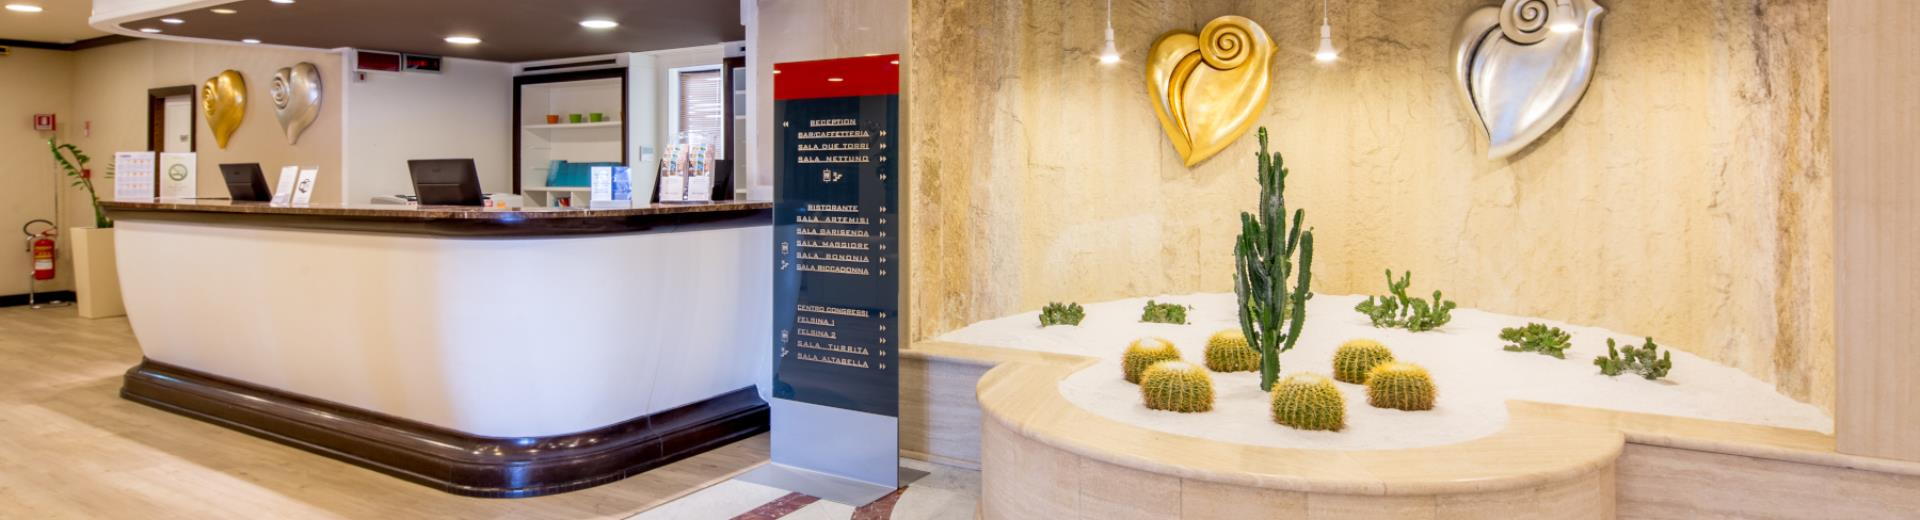 Best Western Plus Tower Hotel Bologna - 4 stelle a Bologna